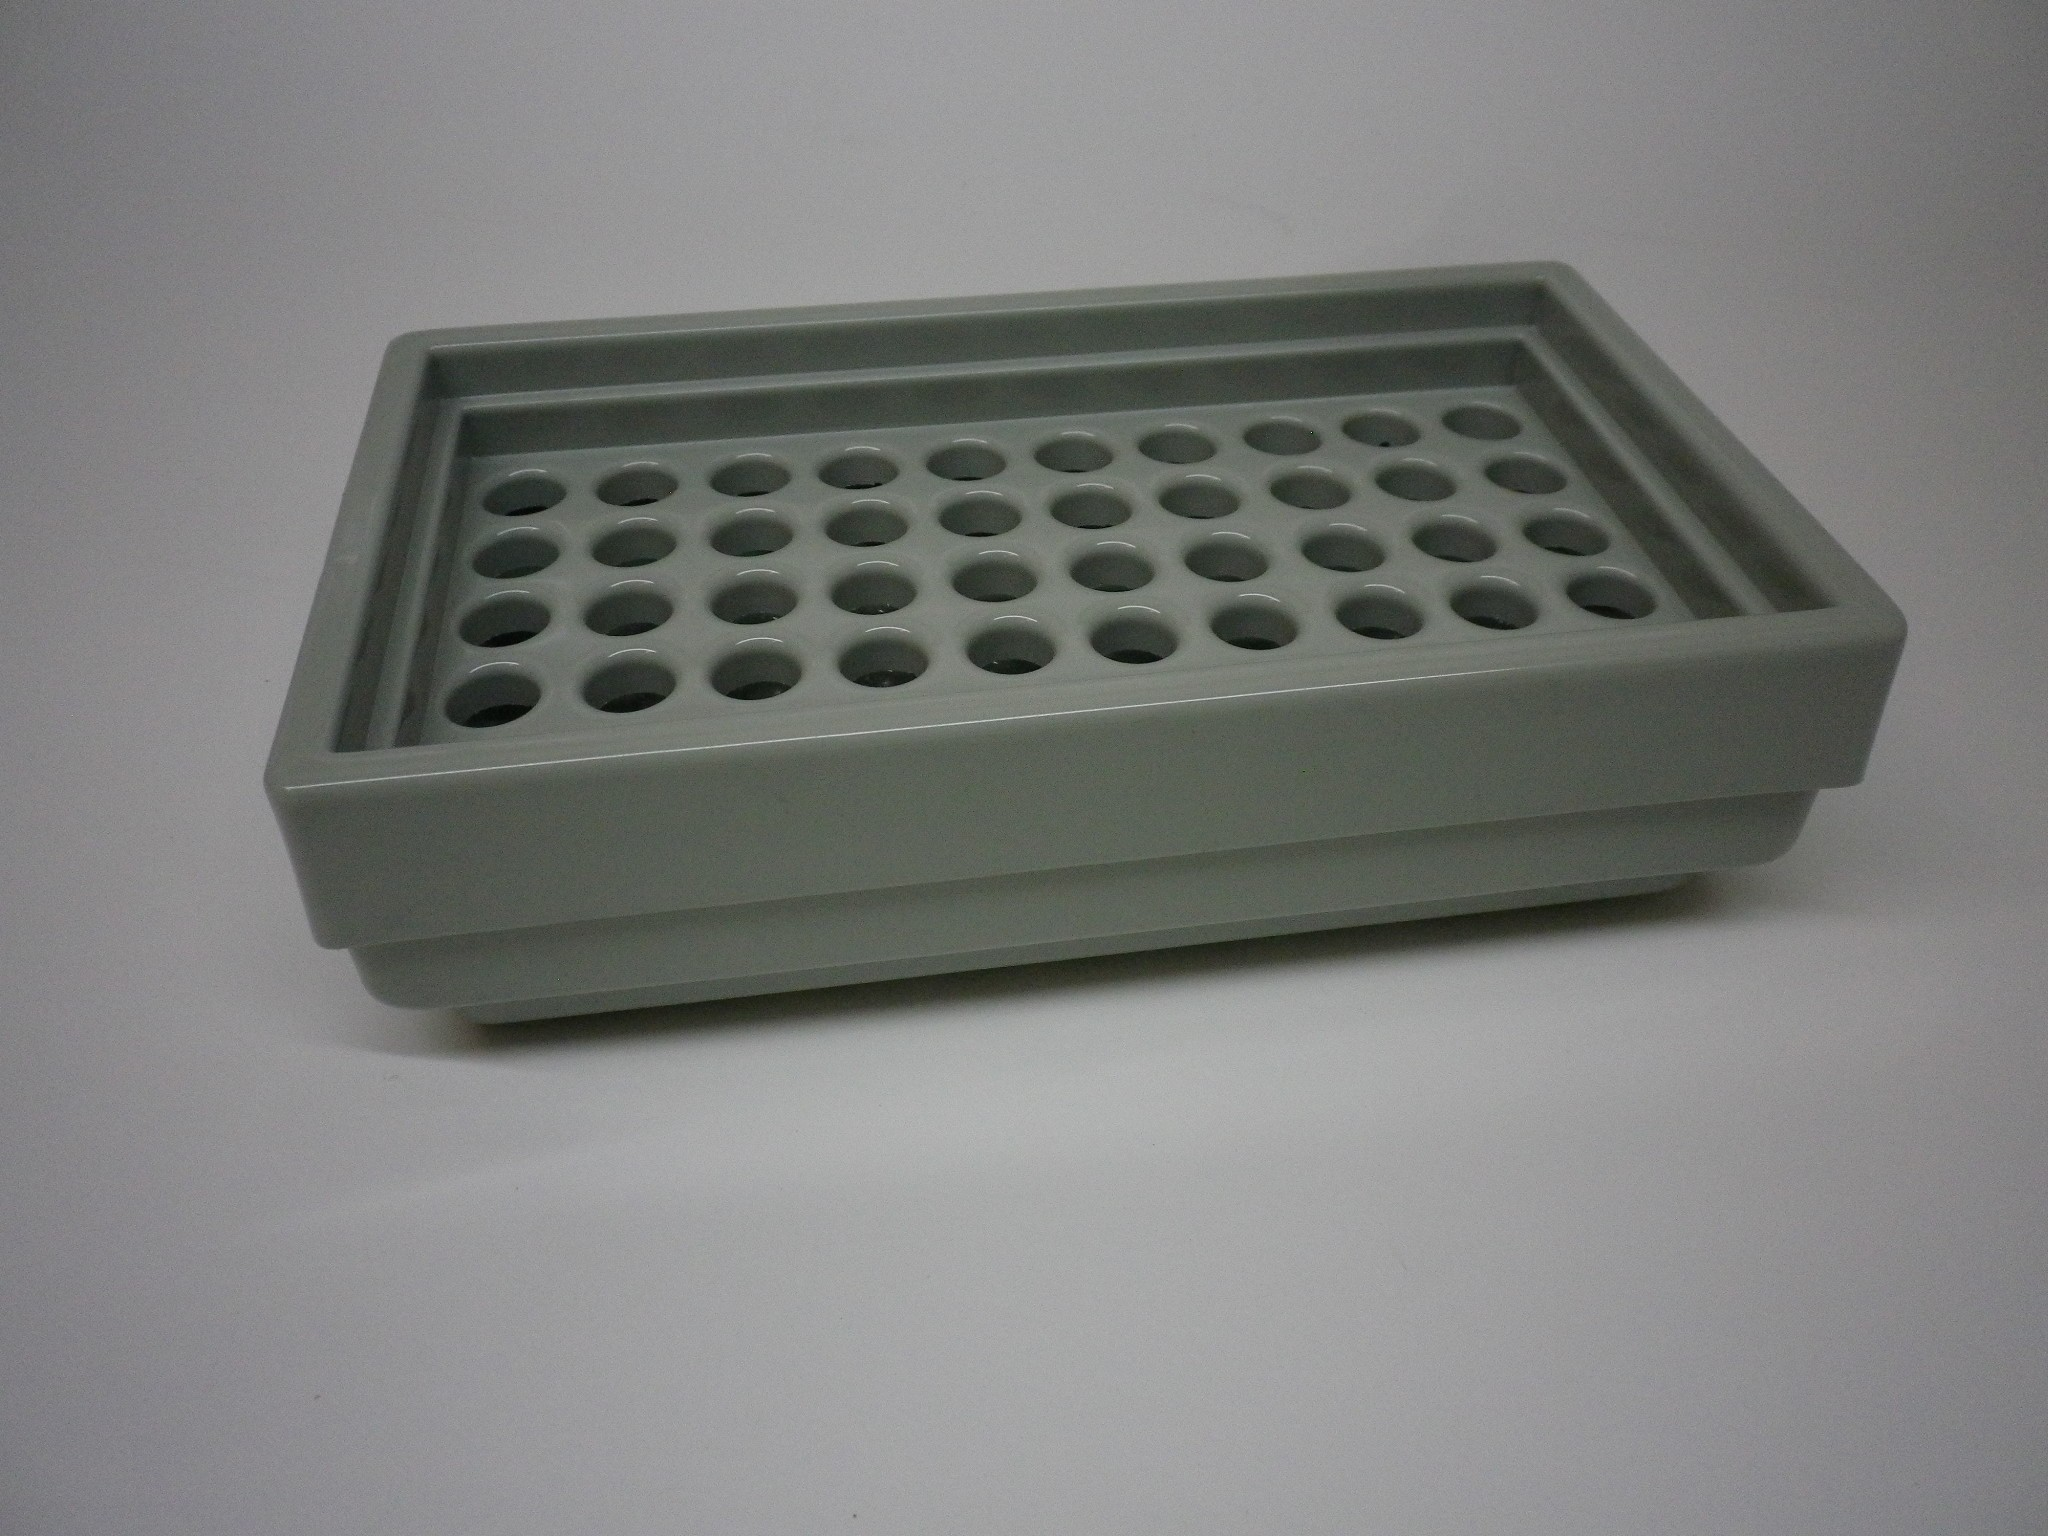 Ice bath rack plastic for 50 tubes with Ø 12 mm